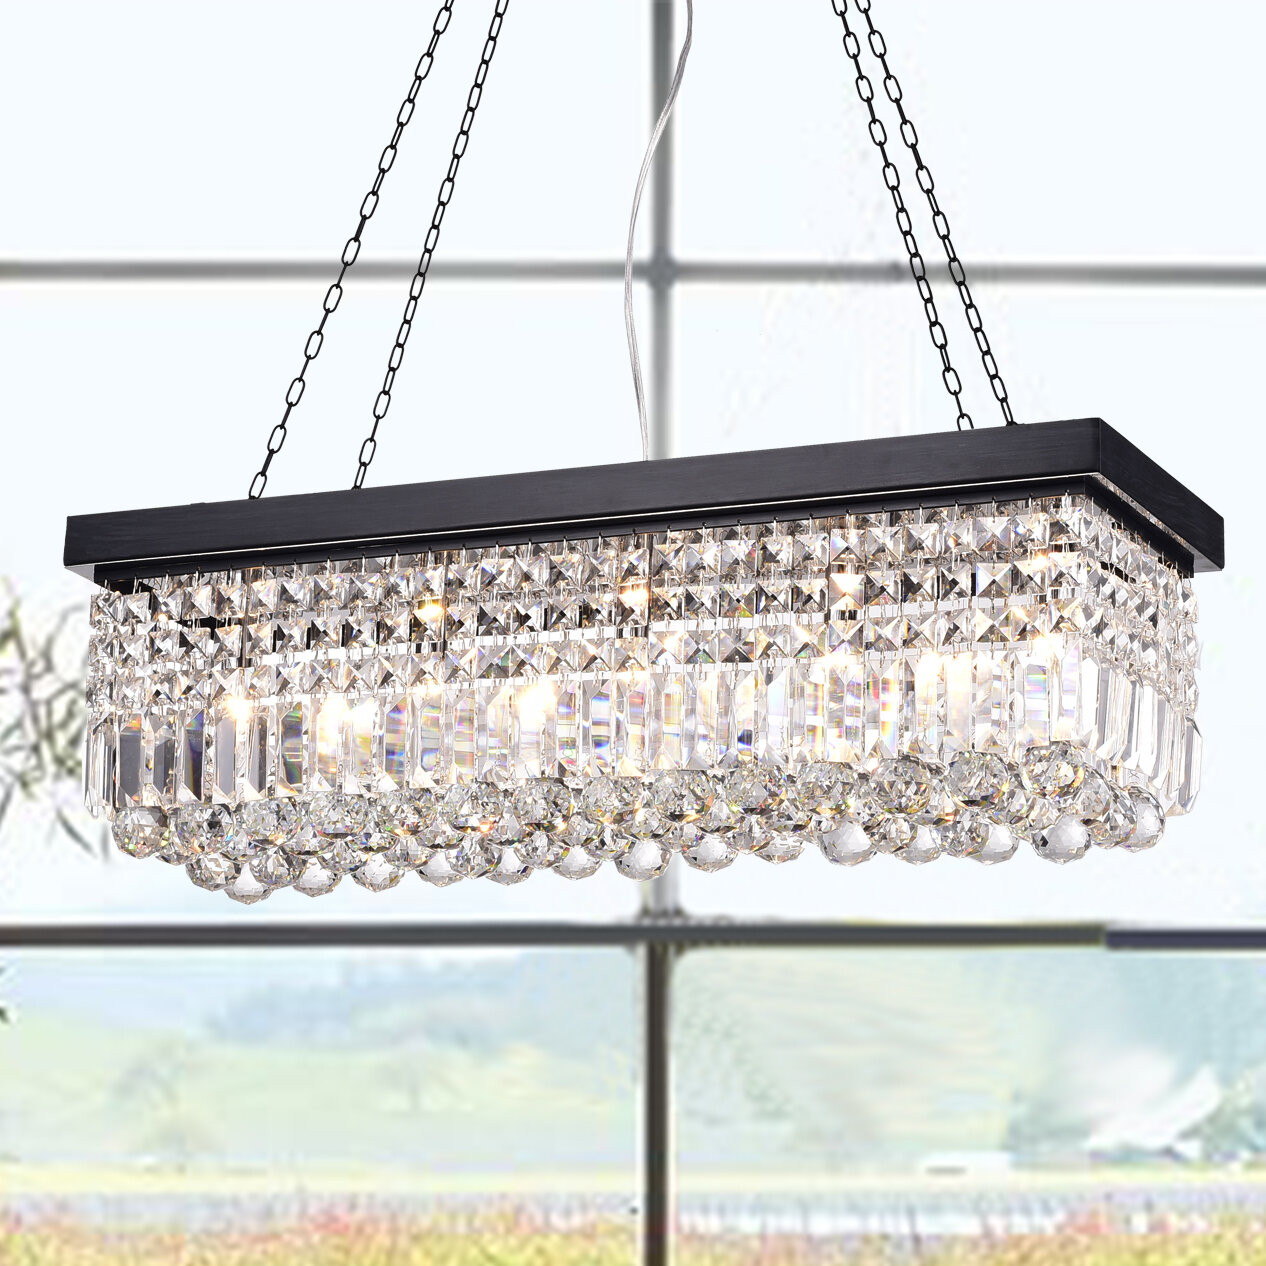 today d wrought black free product inch overstock shipping light fringed garden angelo dangelo chandelier rectangular iron crystal fringe home